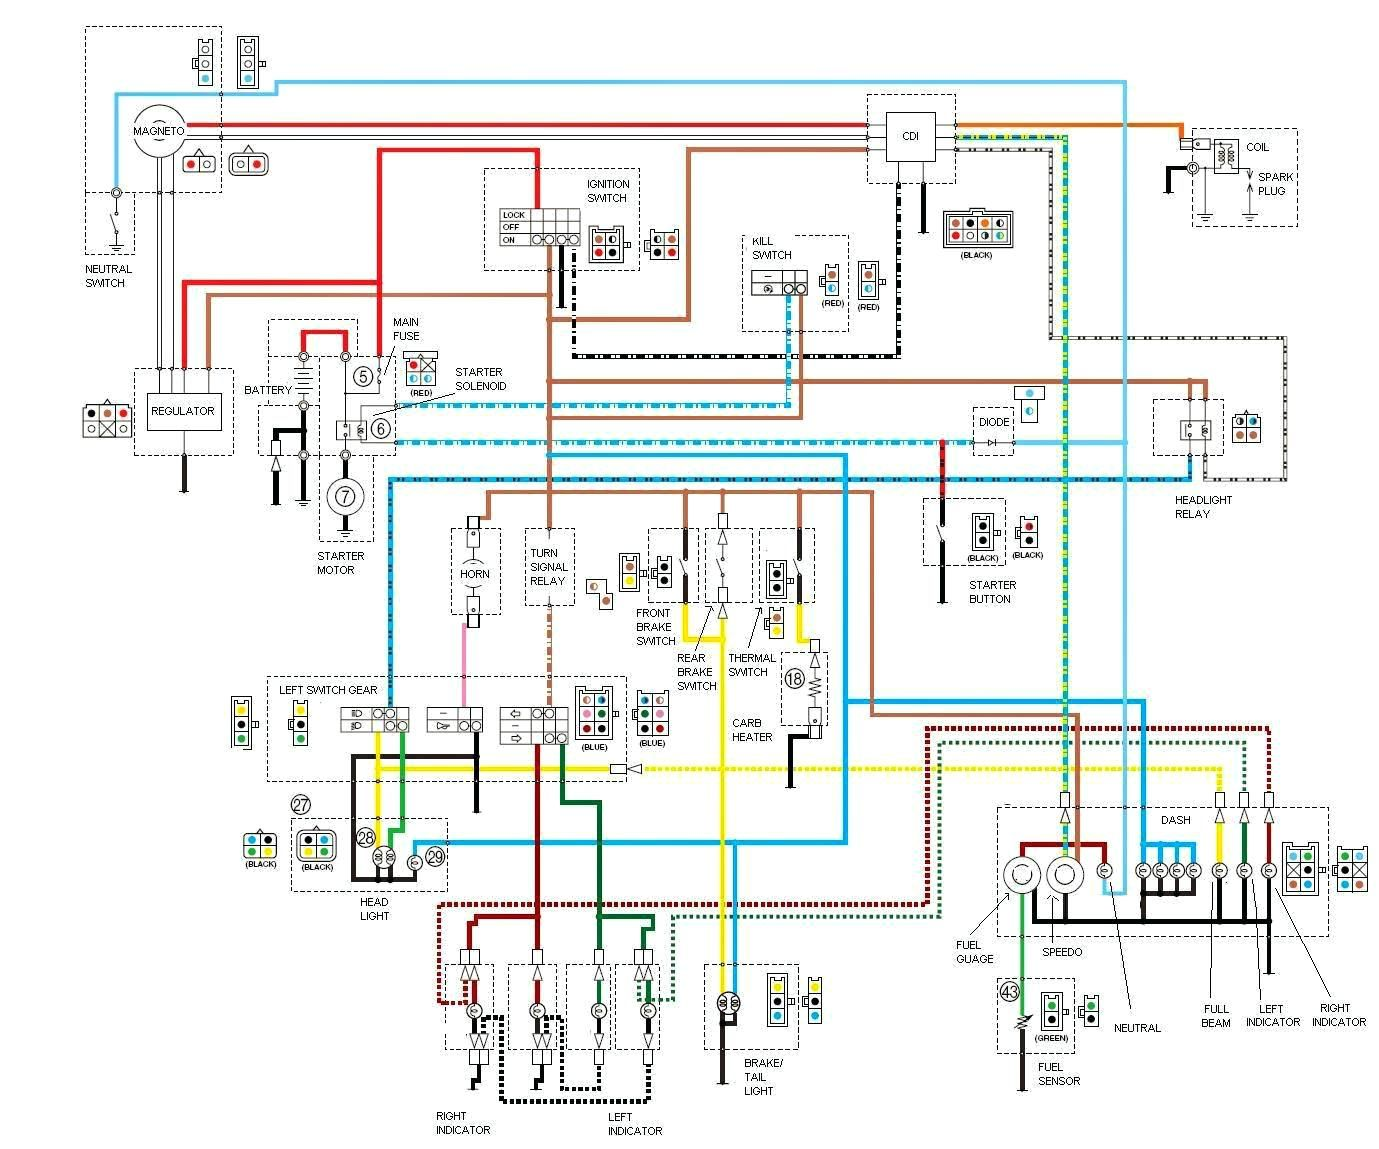 small resolution of guitar live sound setup diagram fantastic band pa system wiring schematic contemporary comfortable ideas electrical archived on wiring diagram category with